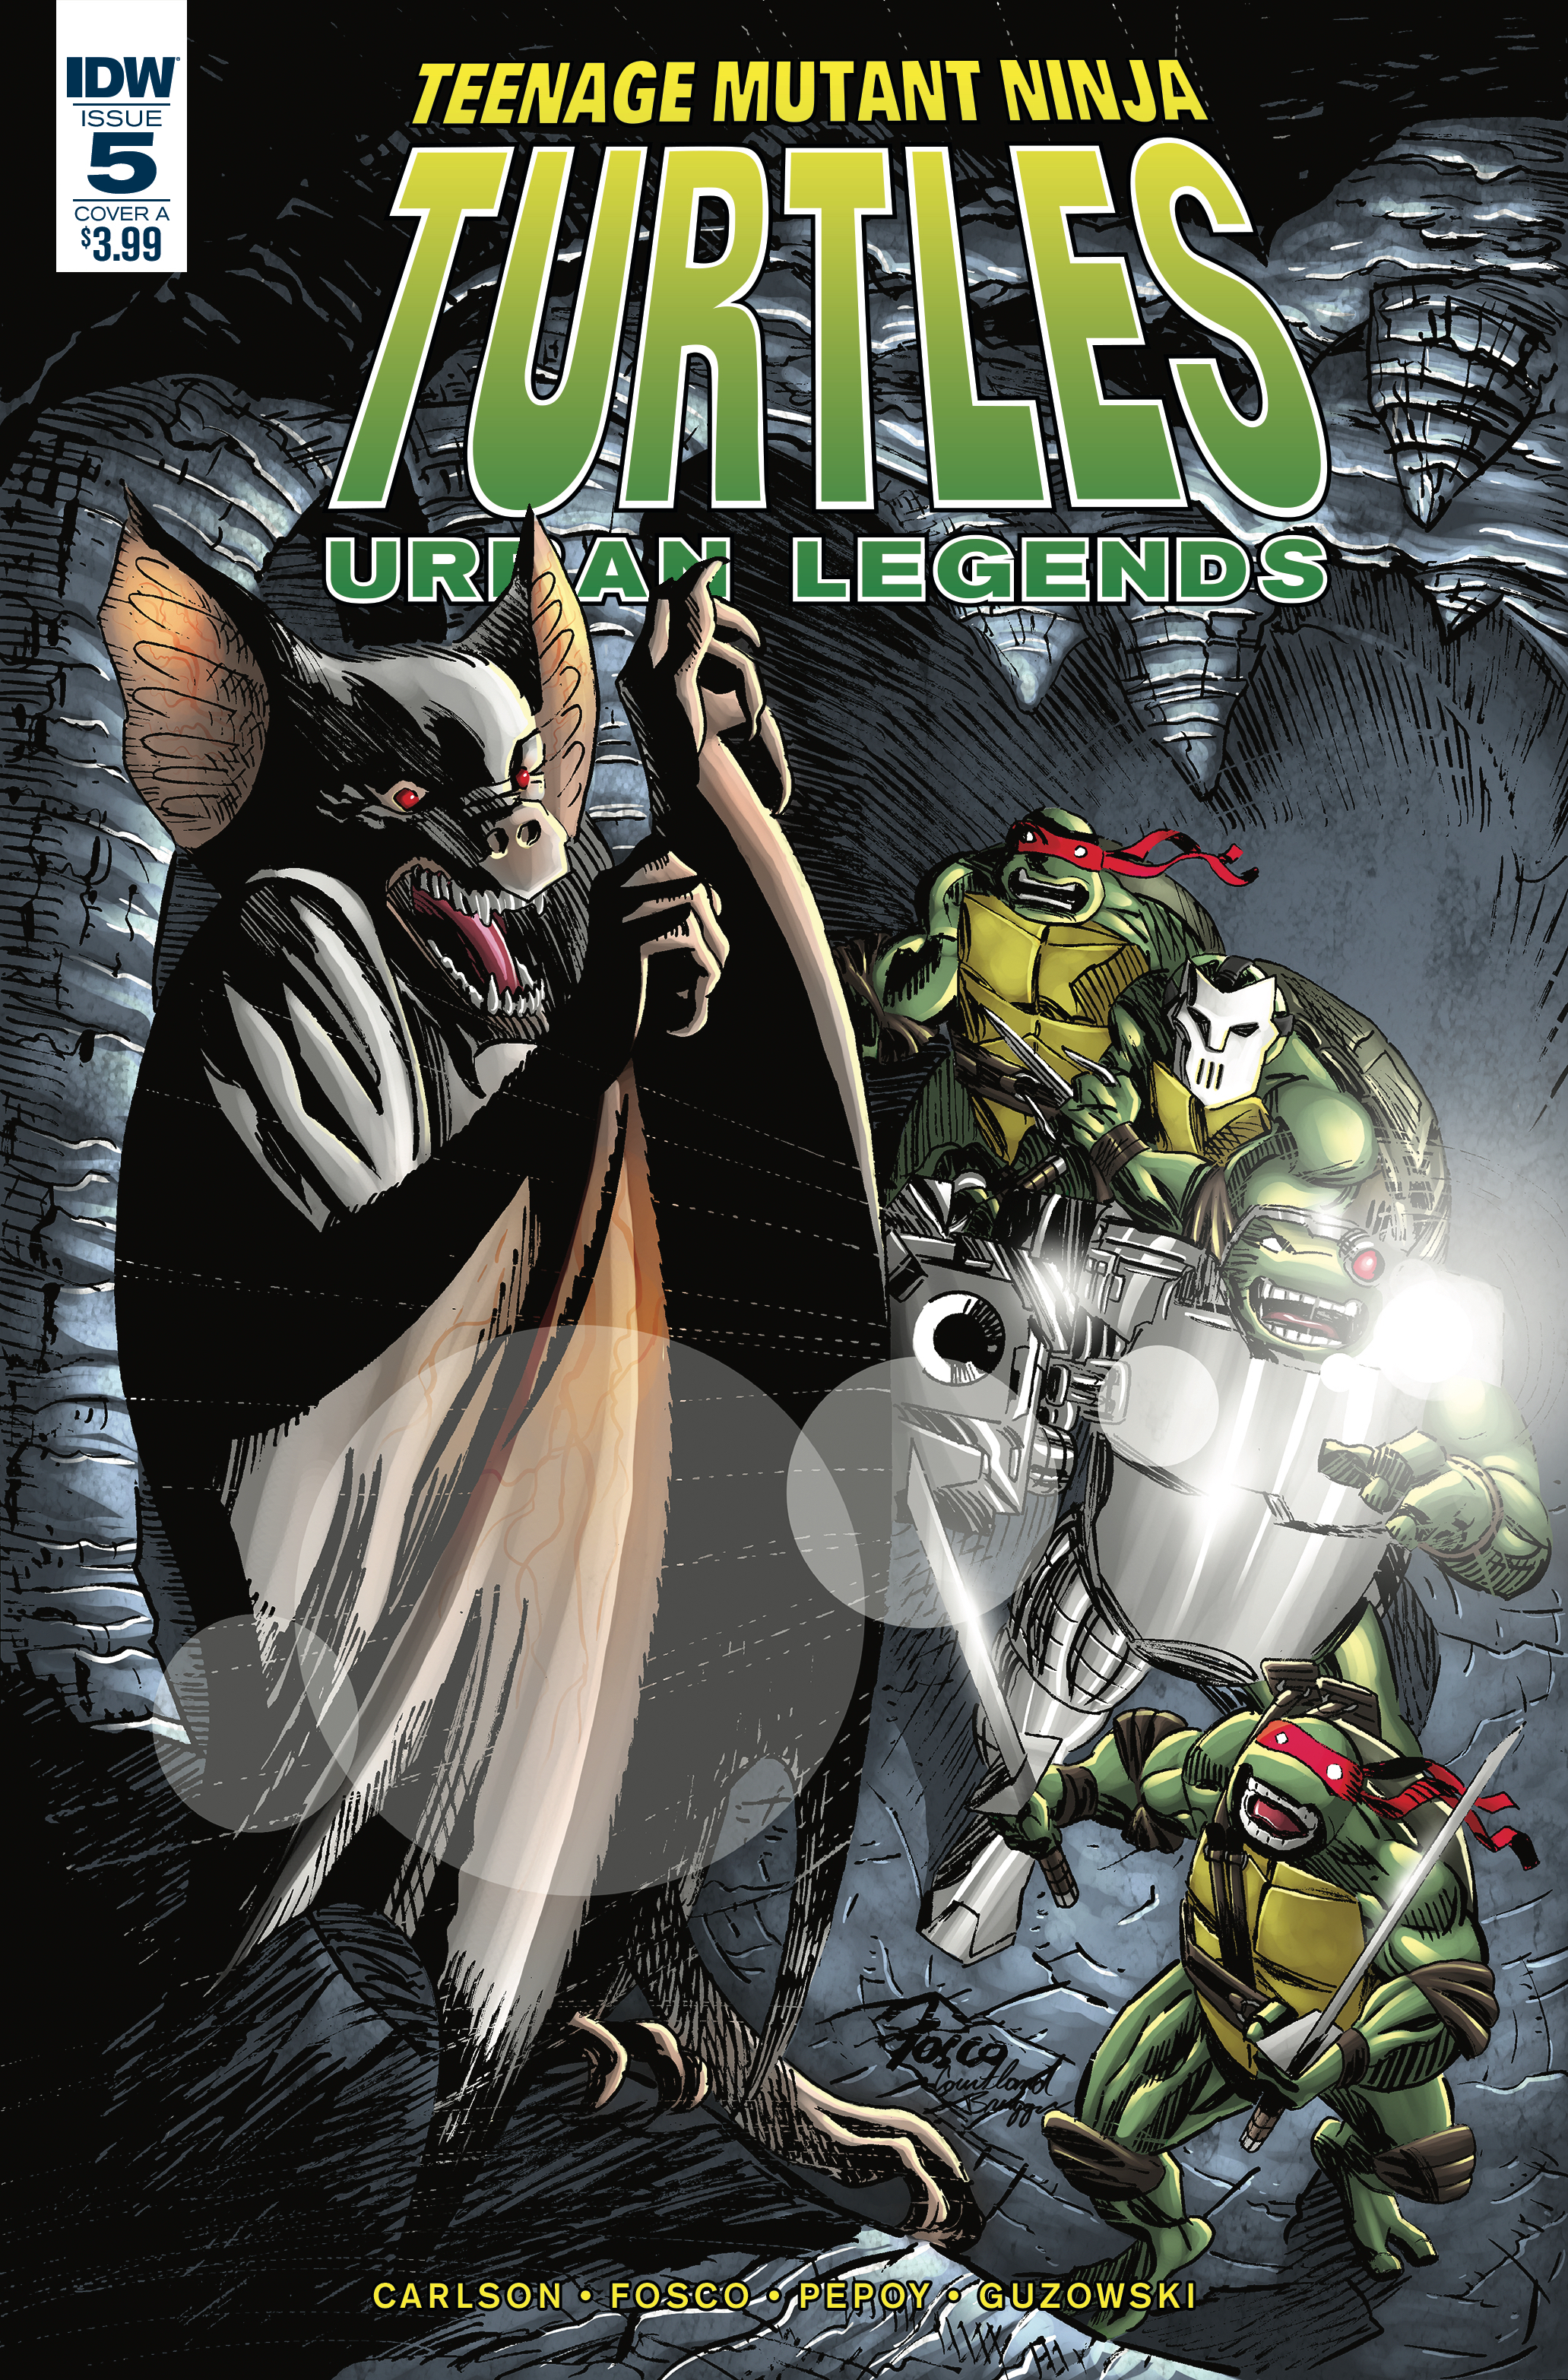 TMNT URBAN LEGENDS #5 CVR A FOSCO